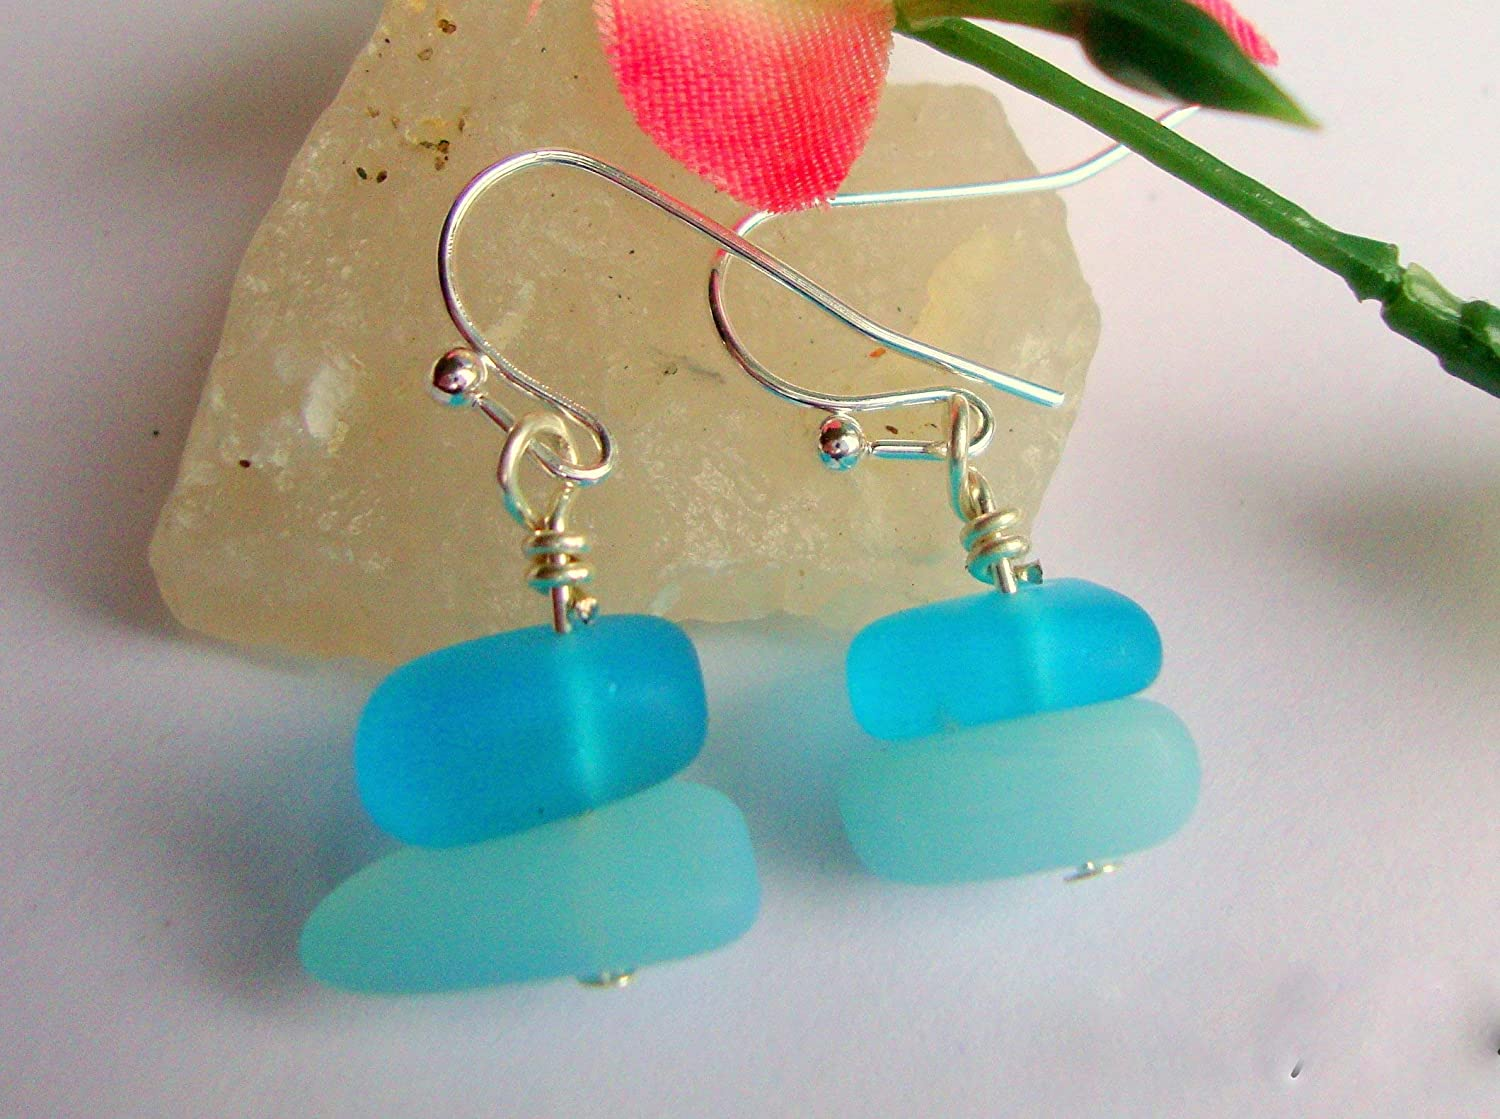 Gifts for Her or Him under 20 Teens Mother/'s Day Sky Blue Amazonite is a Turquoise Colored Gem stone Hand Wrapped in Copper Wire